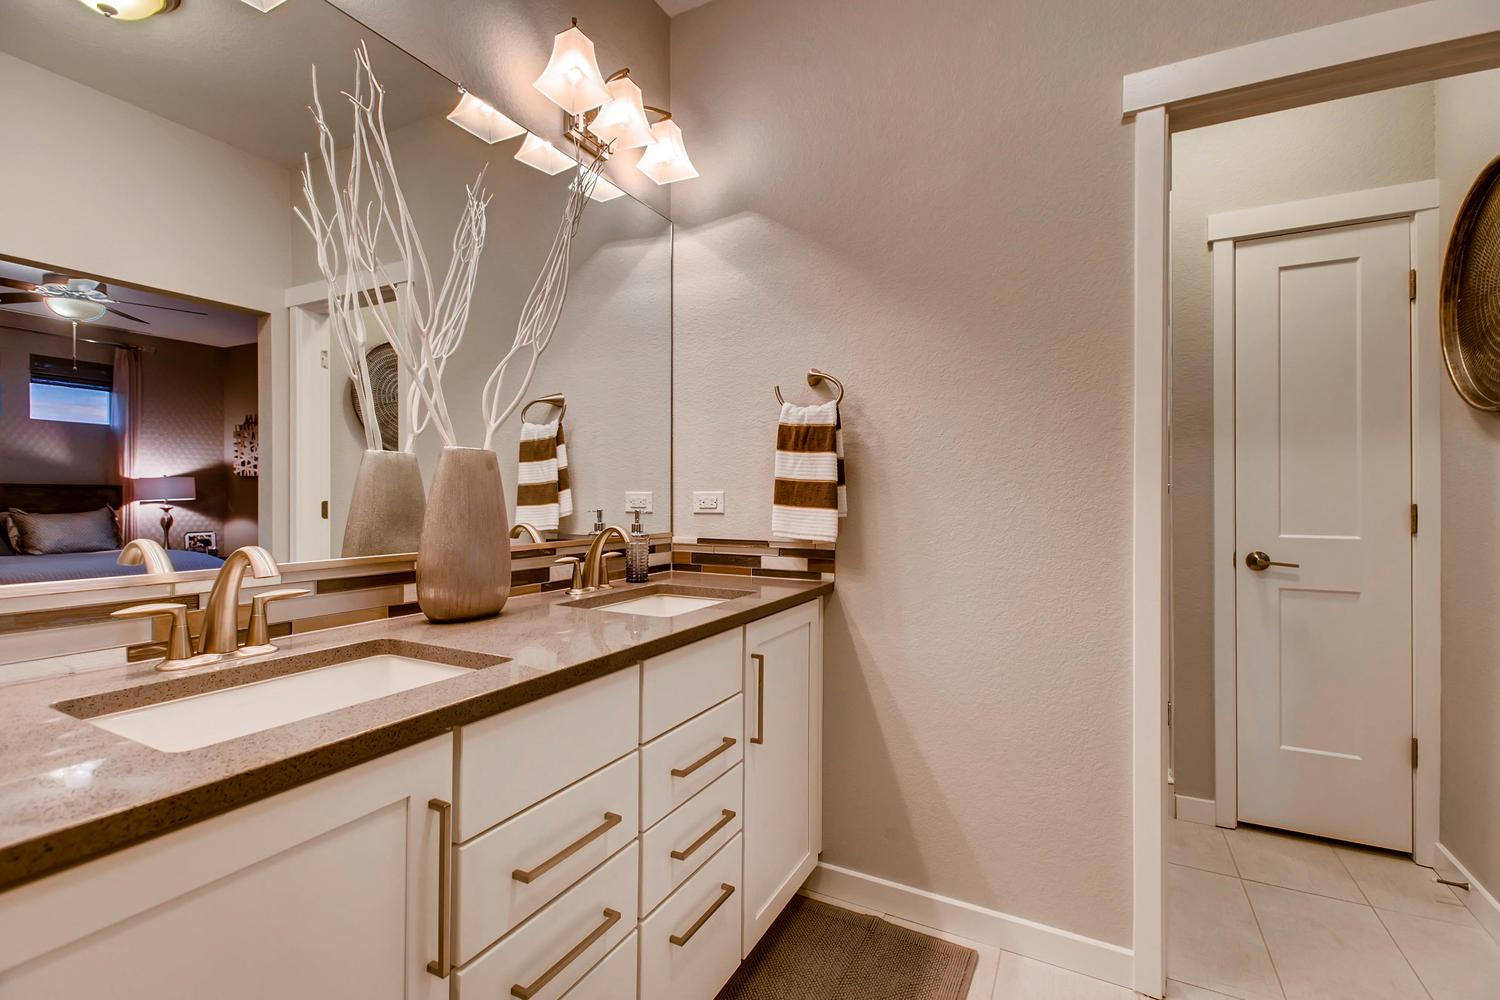 Bathroom featured in the 220 By Classic Homes in Colorado Springs, CO